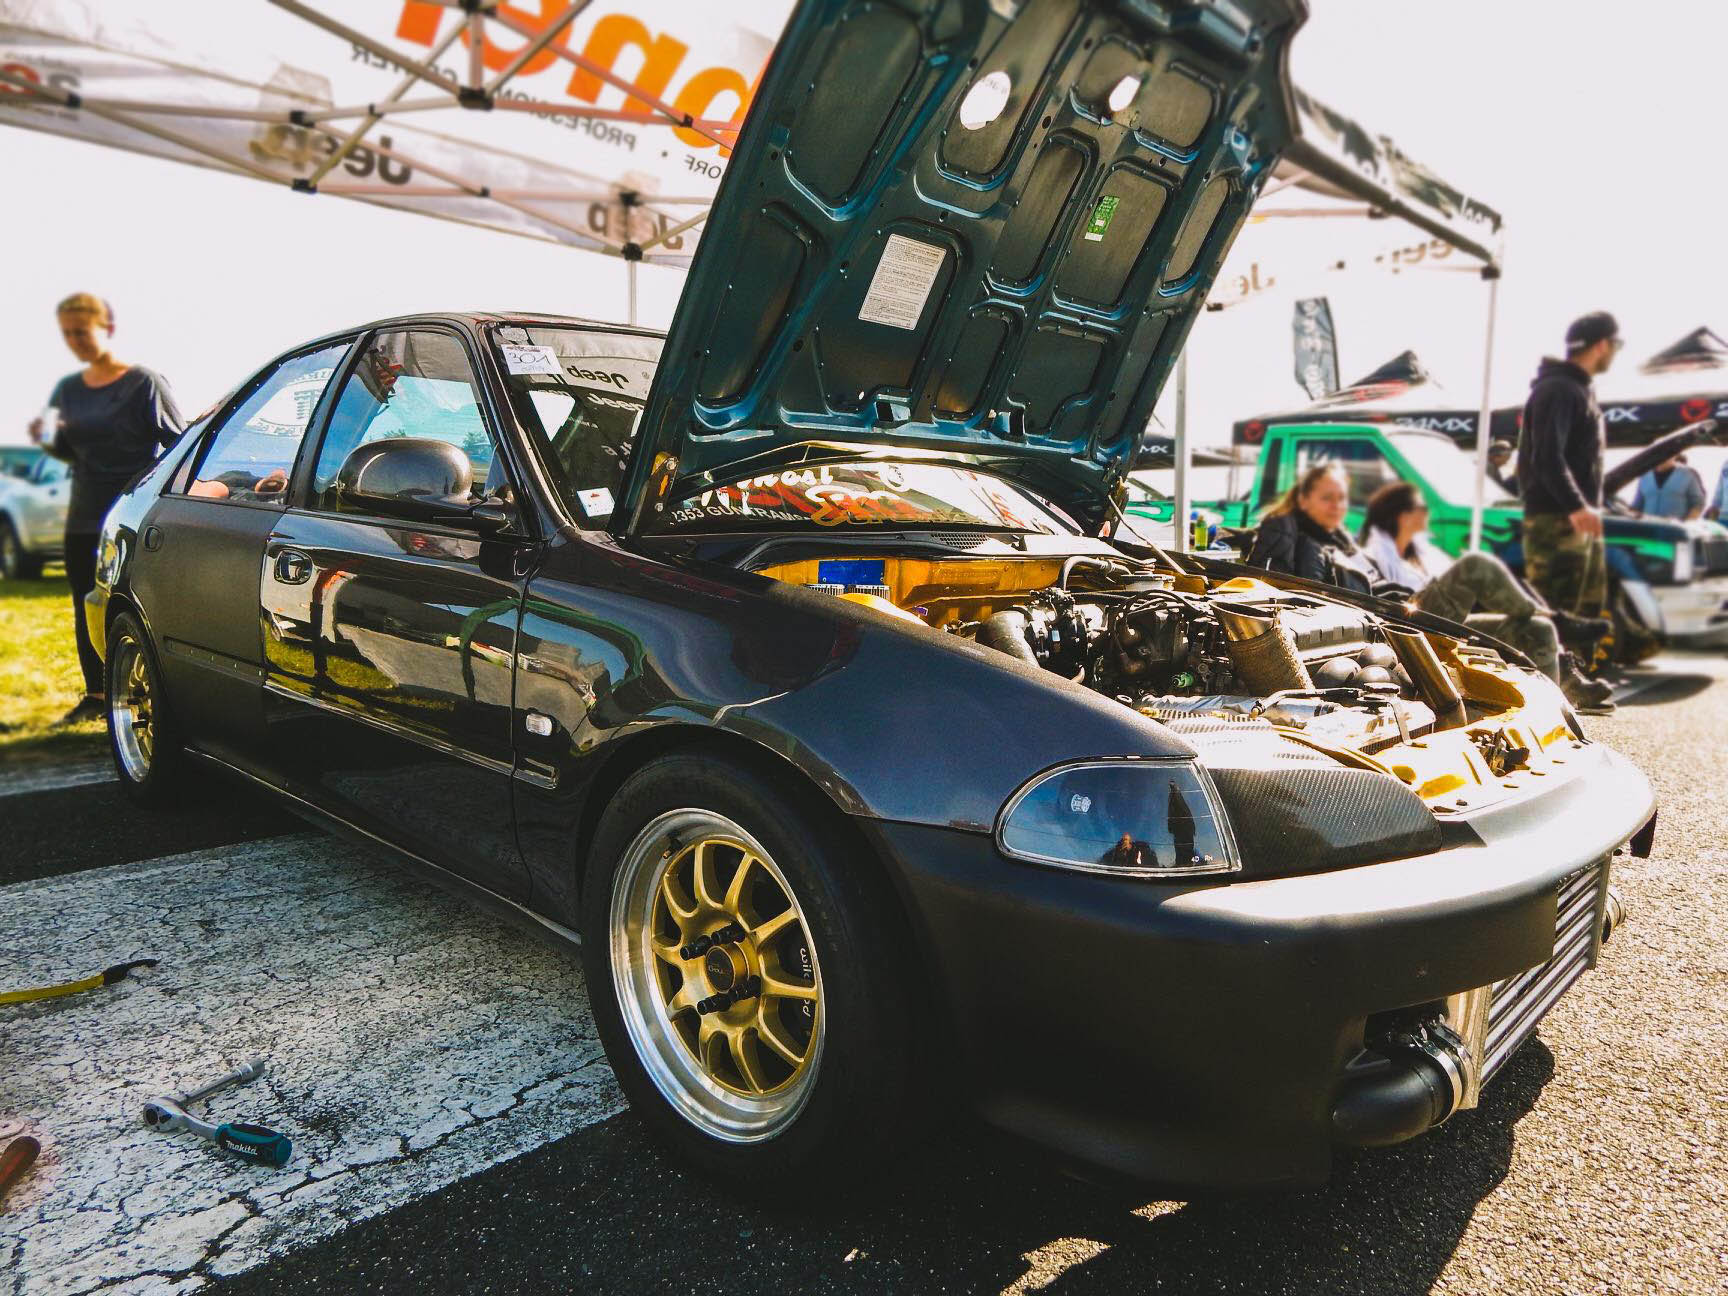 AWD Civic RTSi with a Turbo B18 inline-four